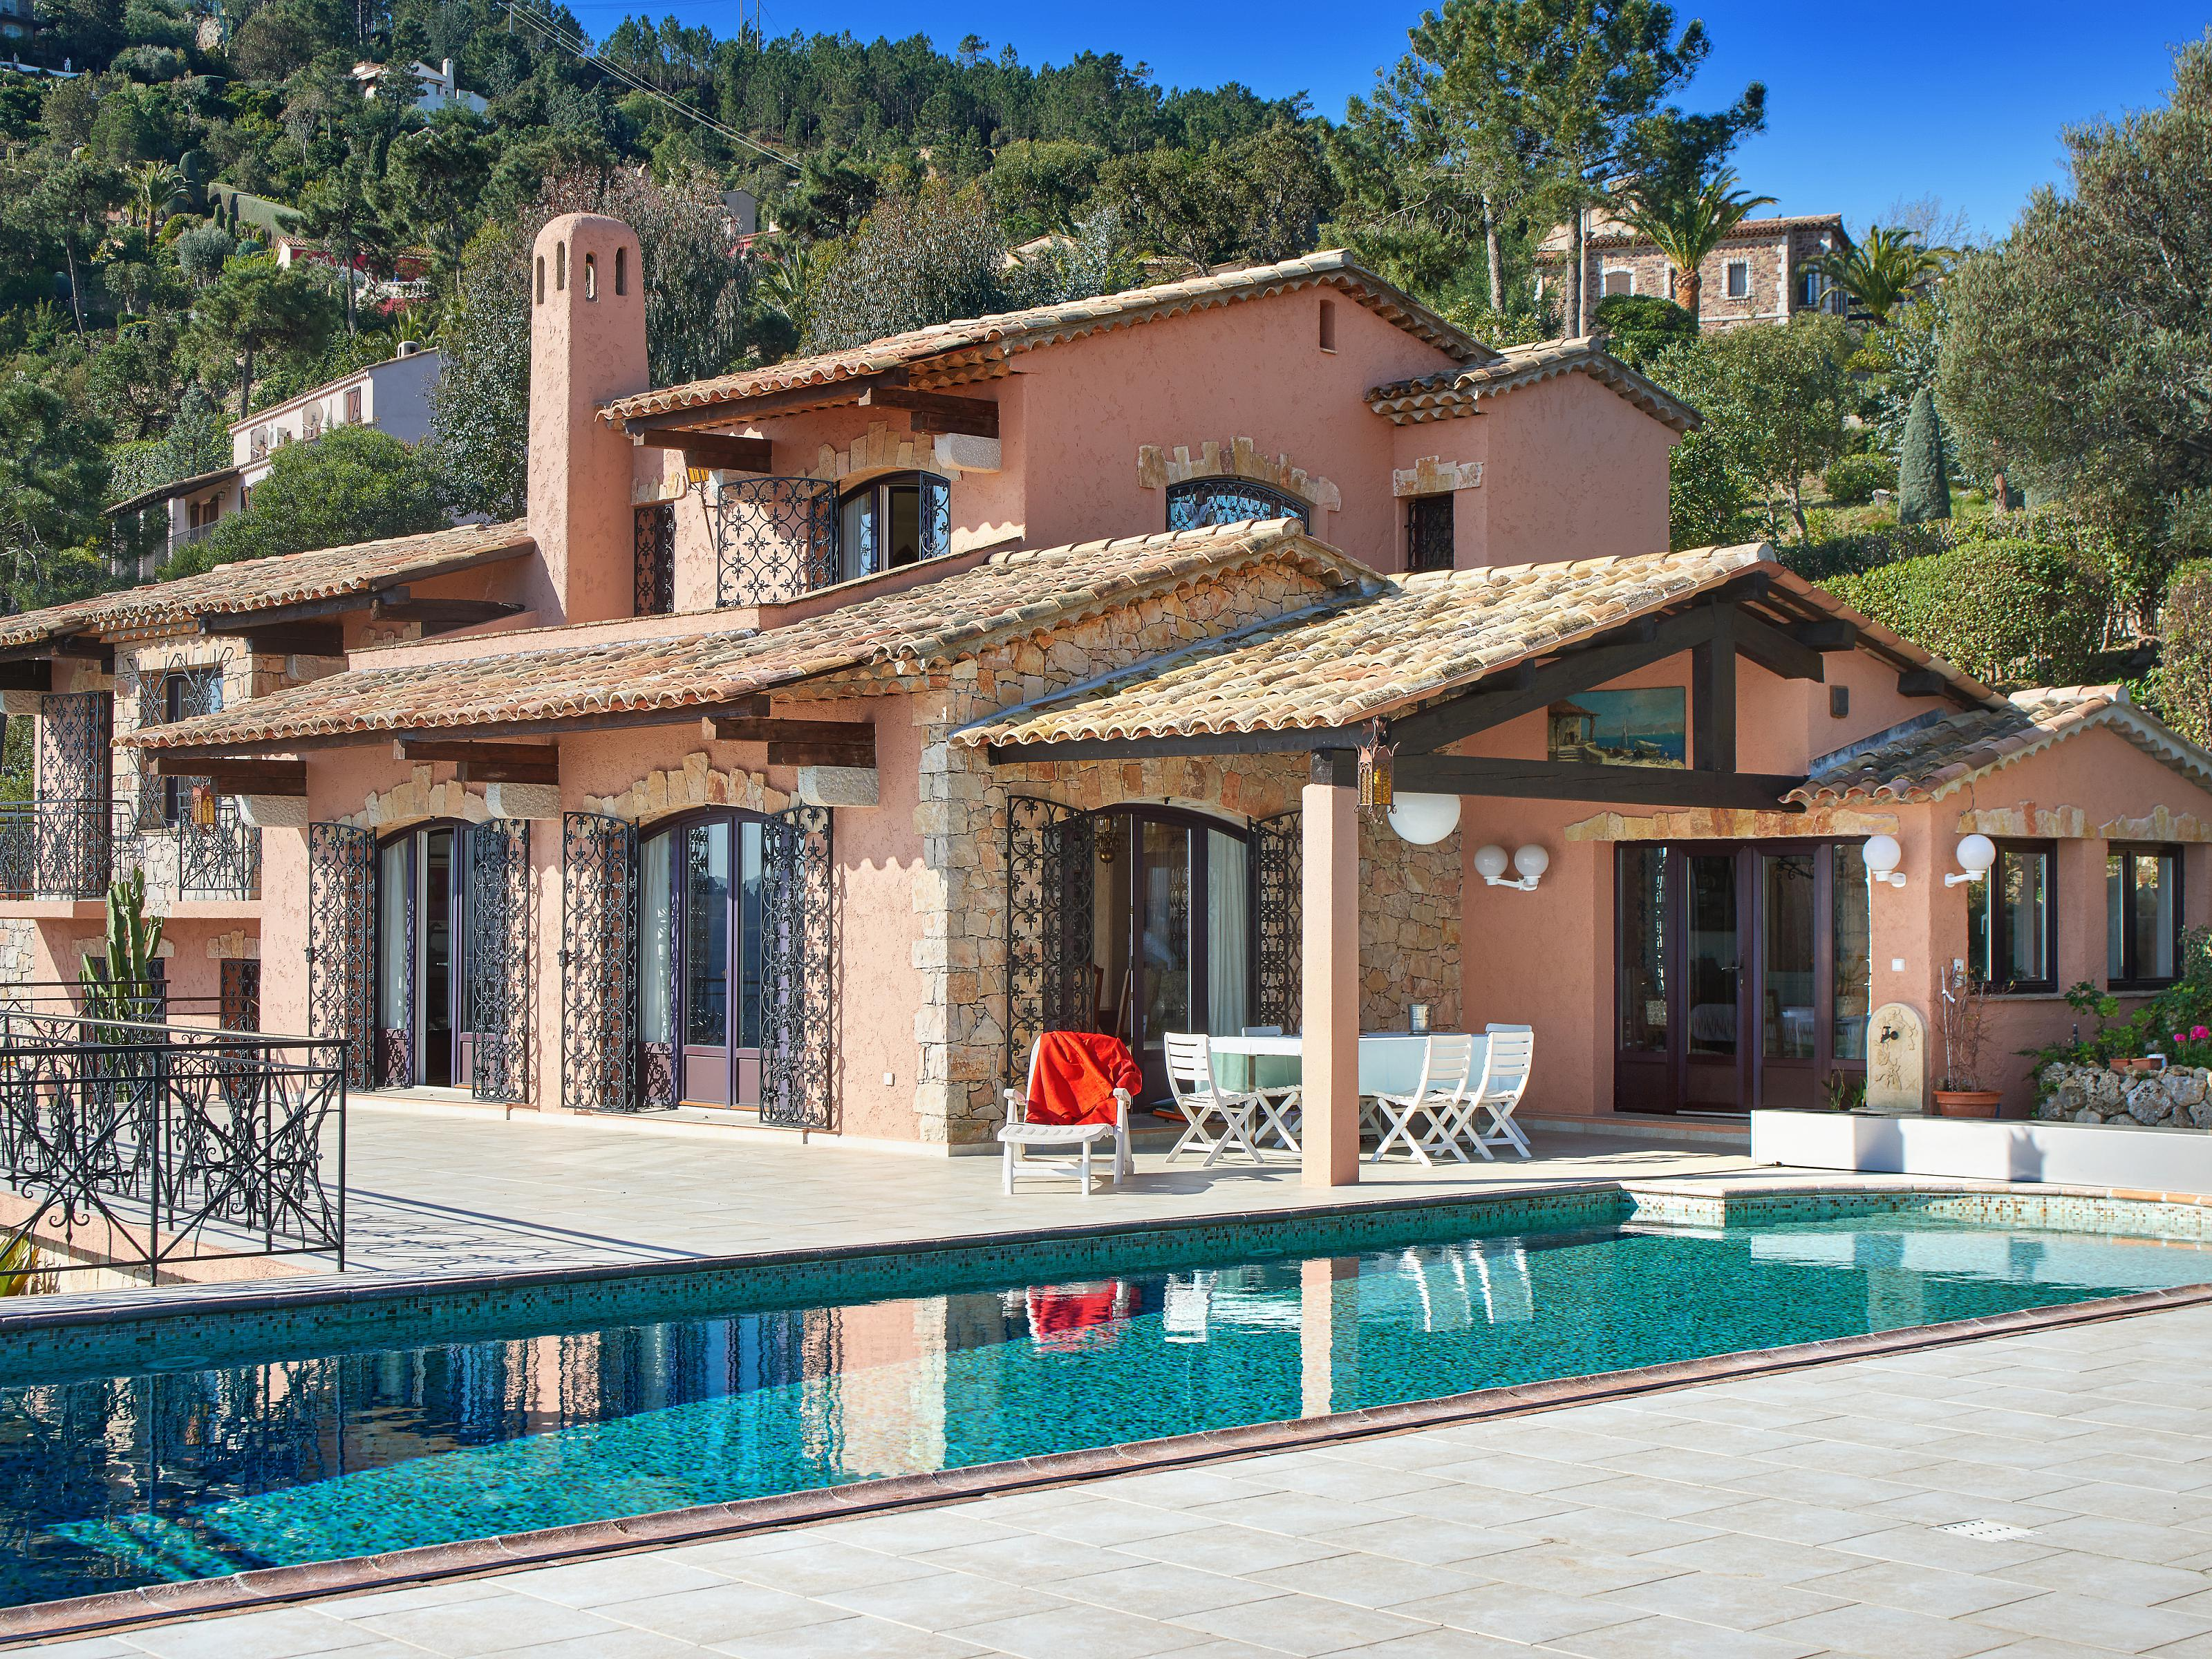 Single Family Home for Sale at Sole Agent. Beautiful provençal property within a private estate for sale Théoule sur Mer Theoule Sur Mer, Provence-Alpes-Cote D'Azur 06590 France